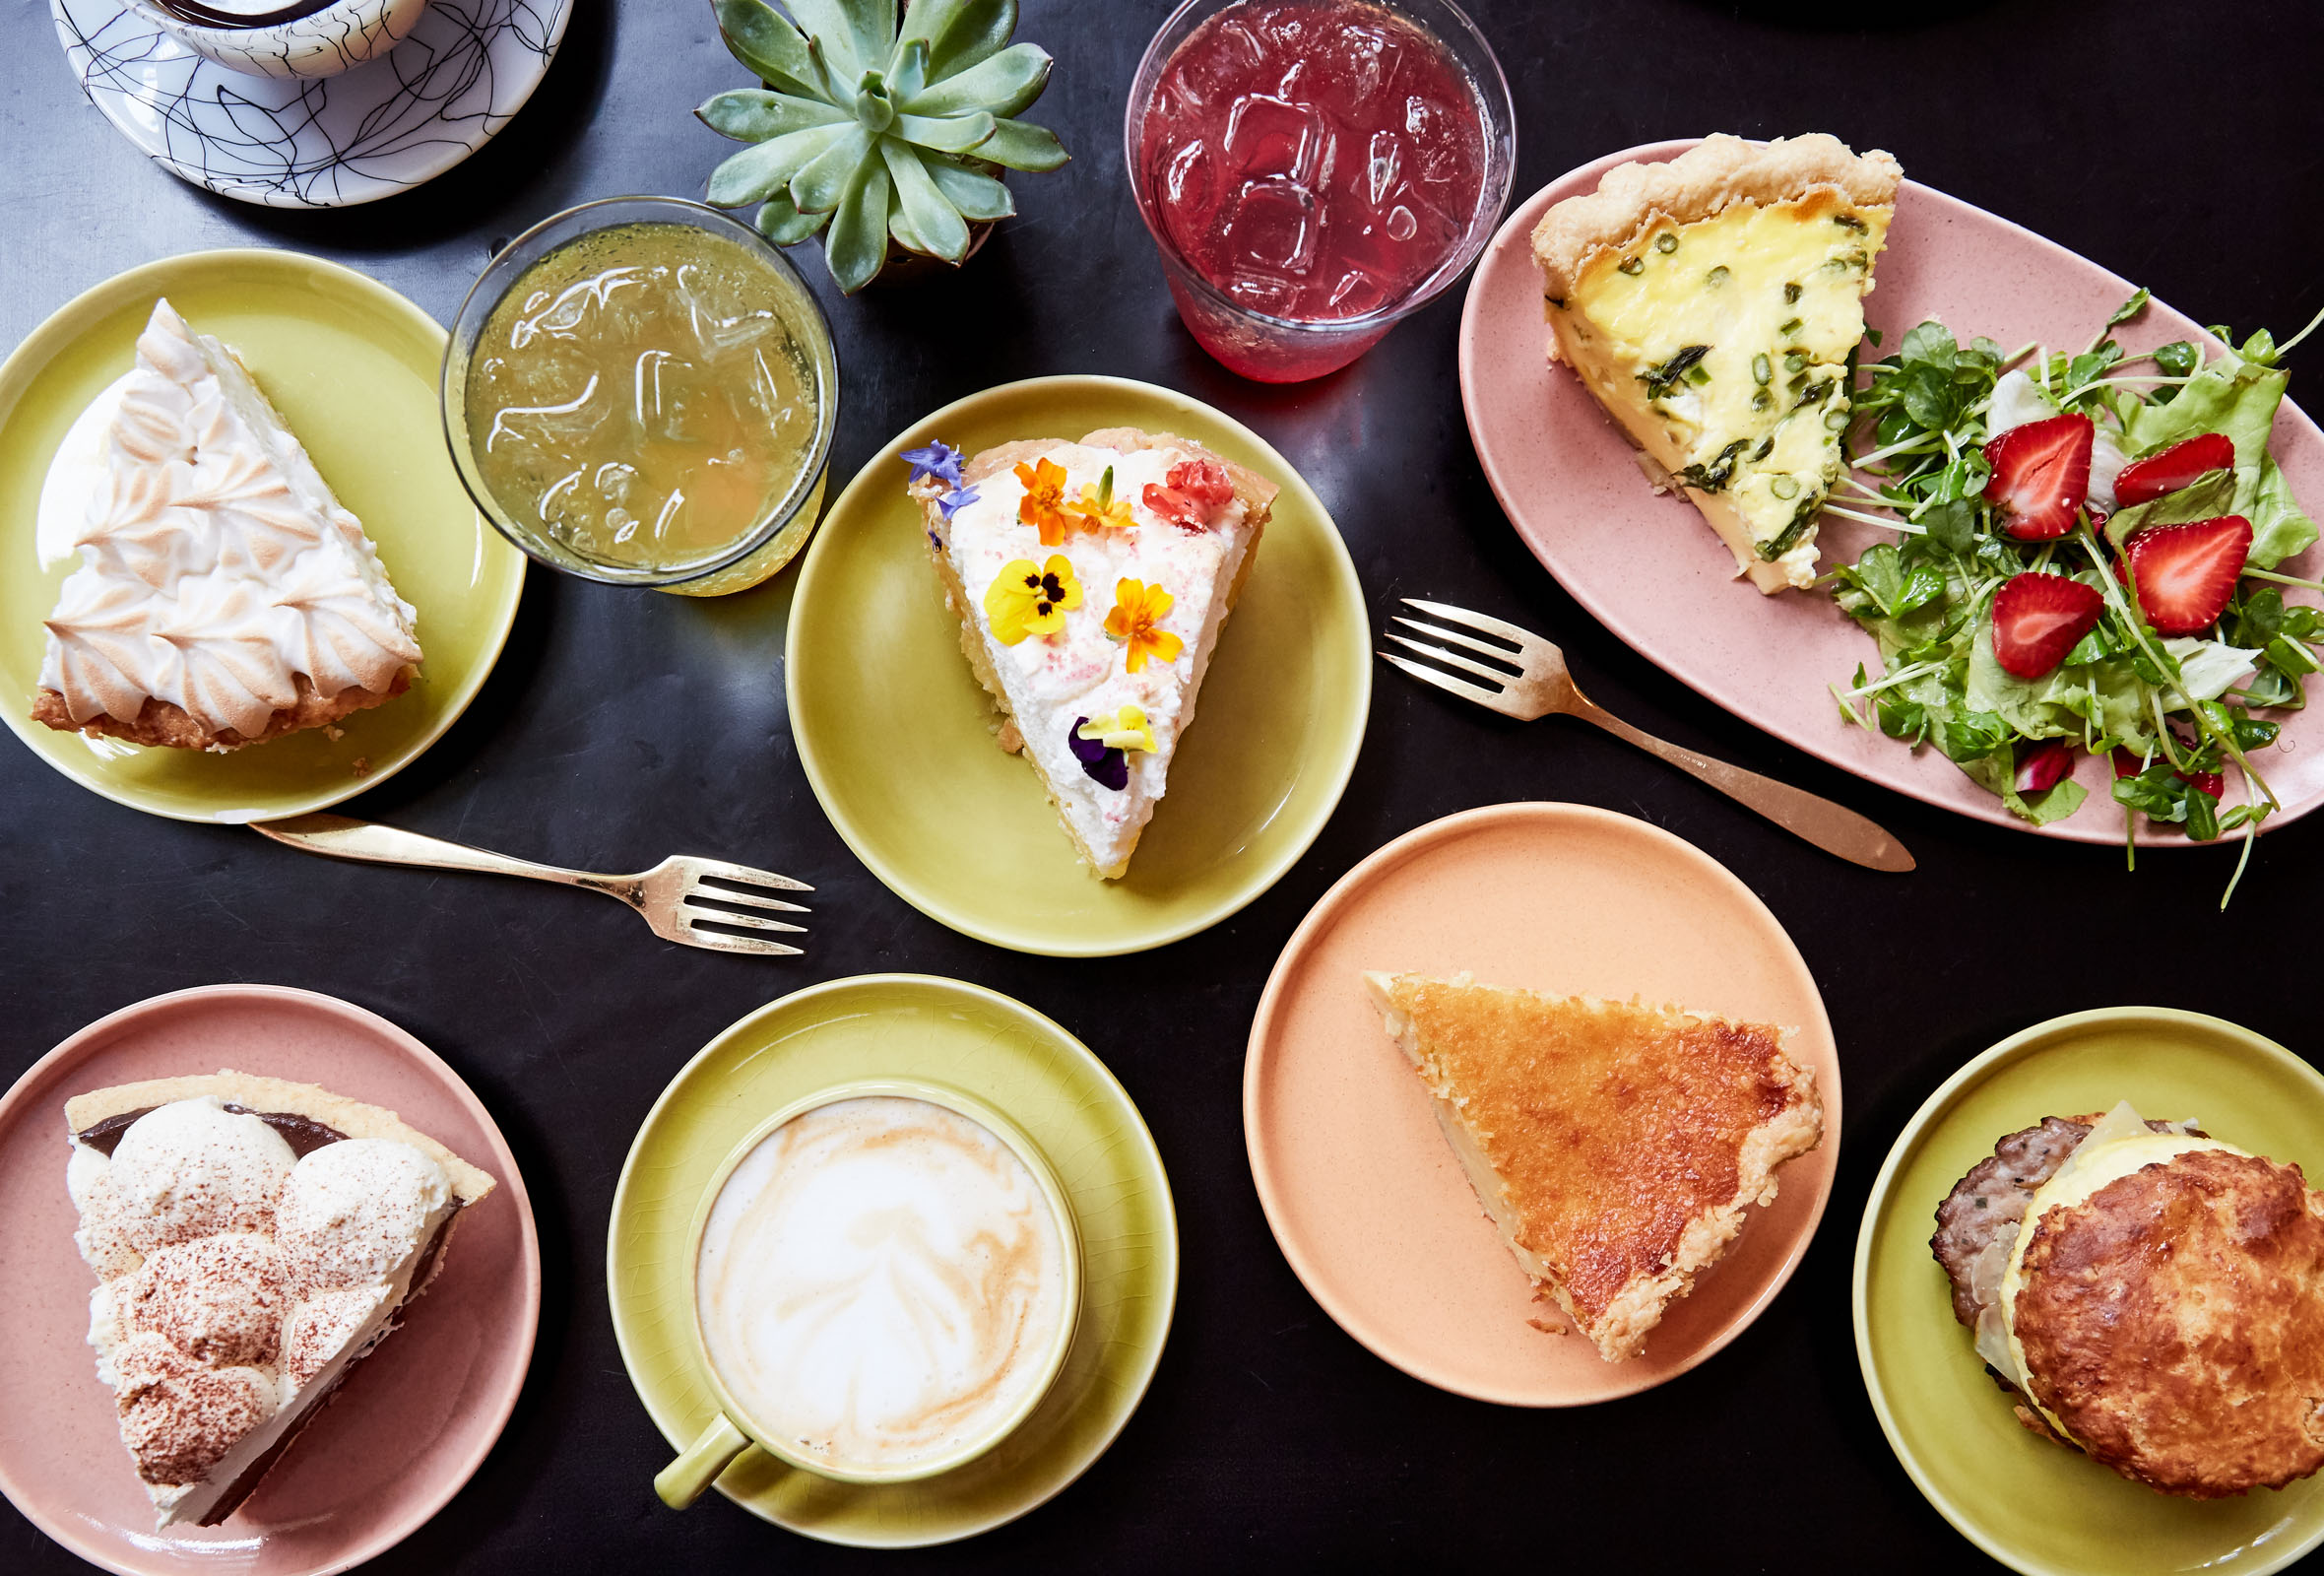 Choose Whatever You Like at Petee's Pie Company – From Sweet to Savory Pies, Cookies and Coffee etc.